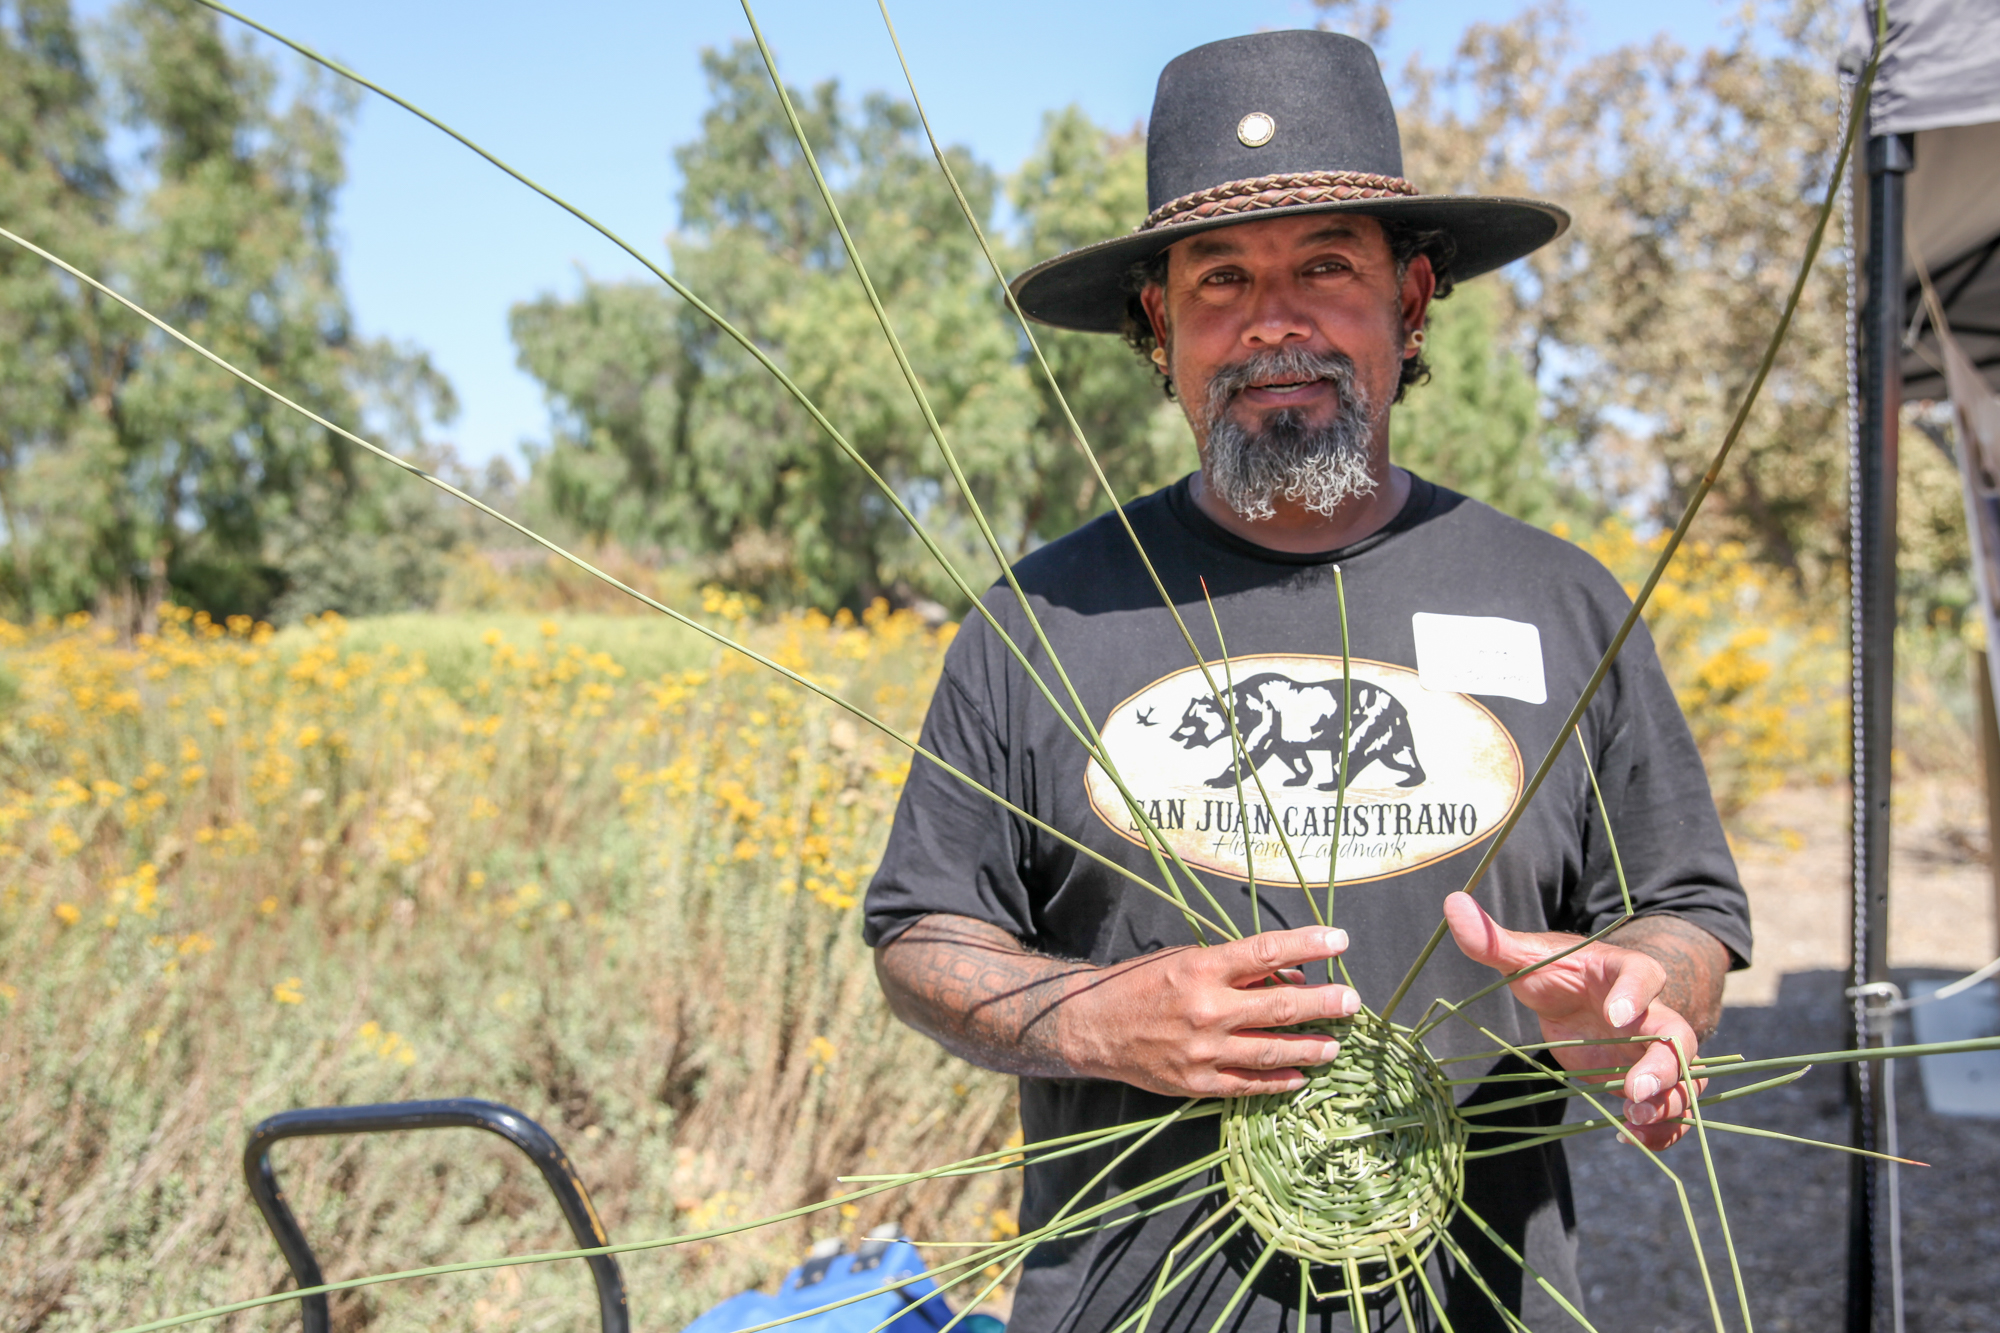 Domingo Belardes, curator of the Blas Aguilar Adobe Museum, weaves an open-work basket out of juncus. The baskets were used by the Acjachemen people for gathering roots, nuts and berries. Photo: Allison Jarrell